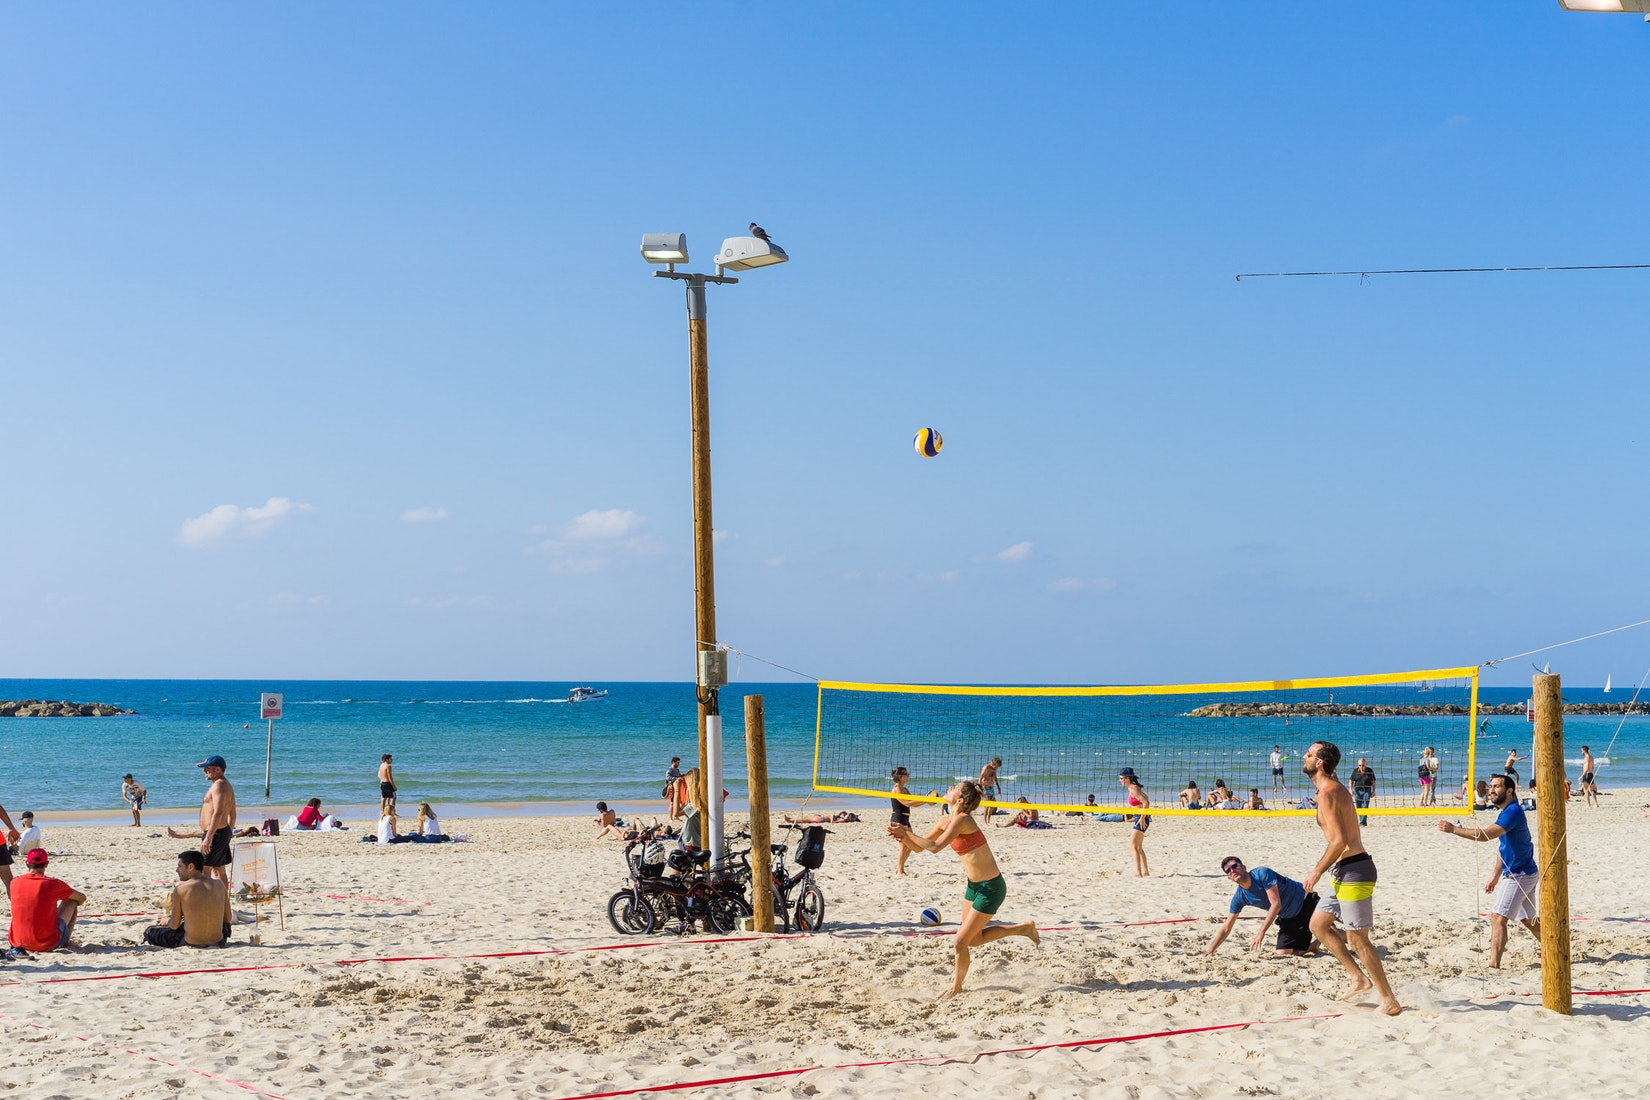 People playing volleyball at a beach in Tel Aviv